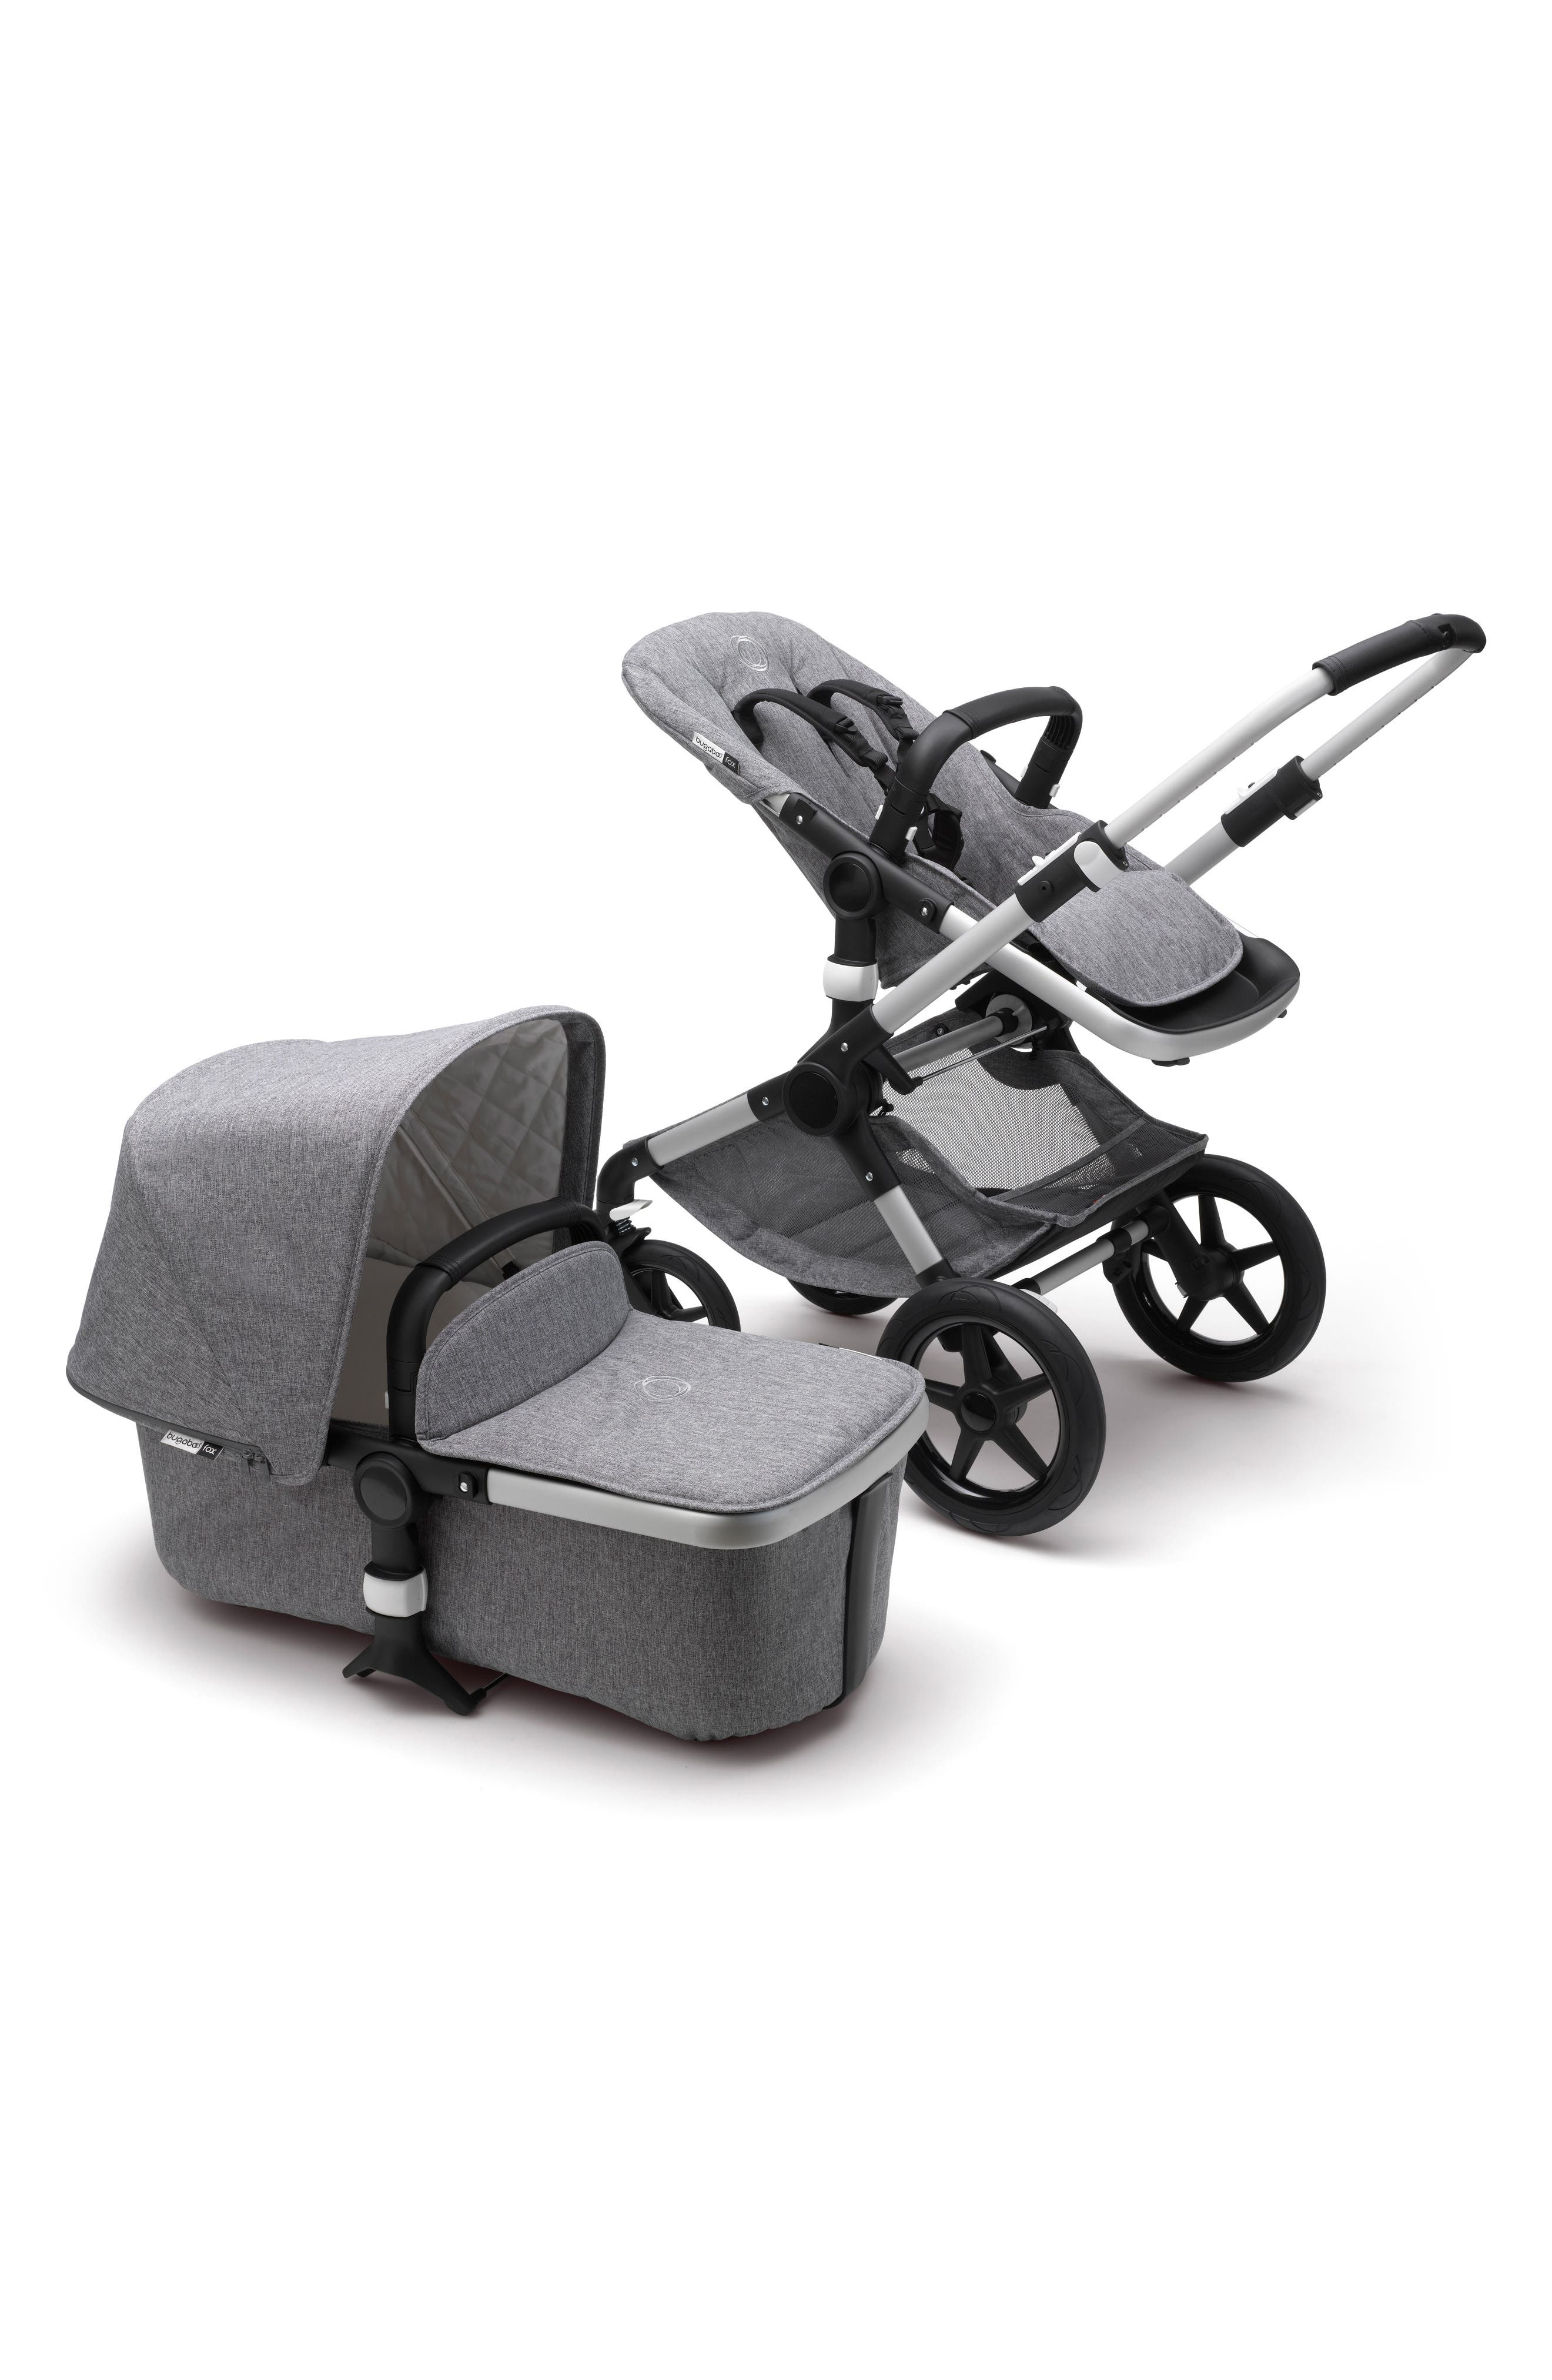 Fox Classic Complete Stroller with Bassinet,                             Main thumbnail 1, color,                             GREY MELANGE/ ALUMINUM